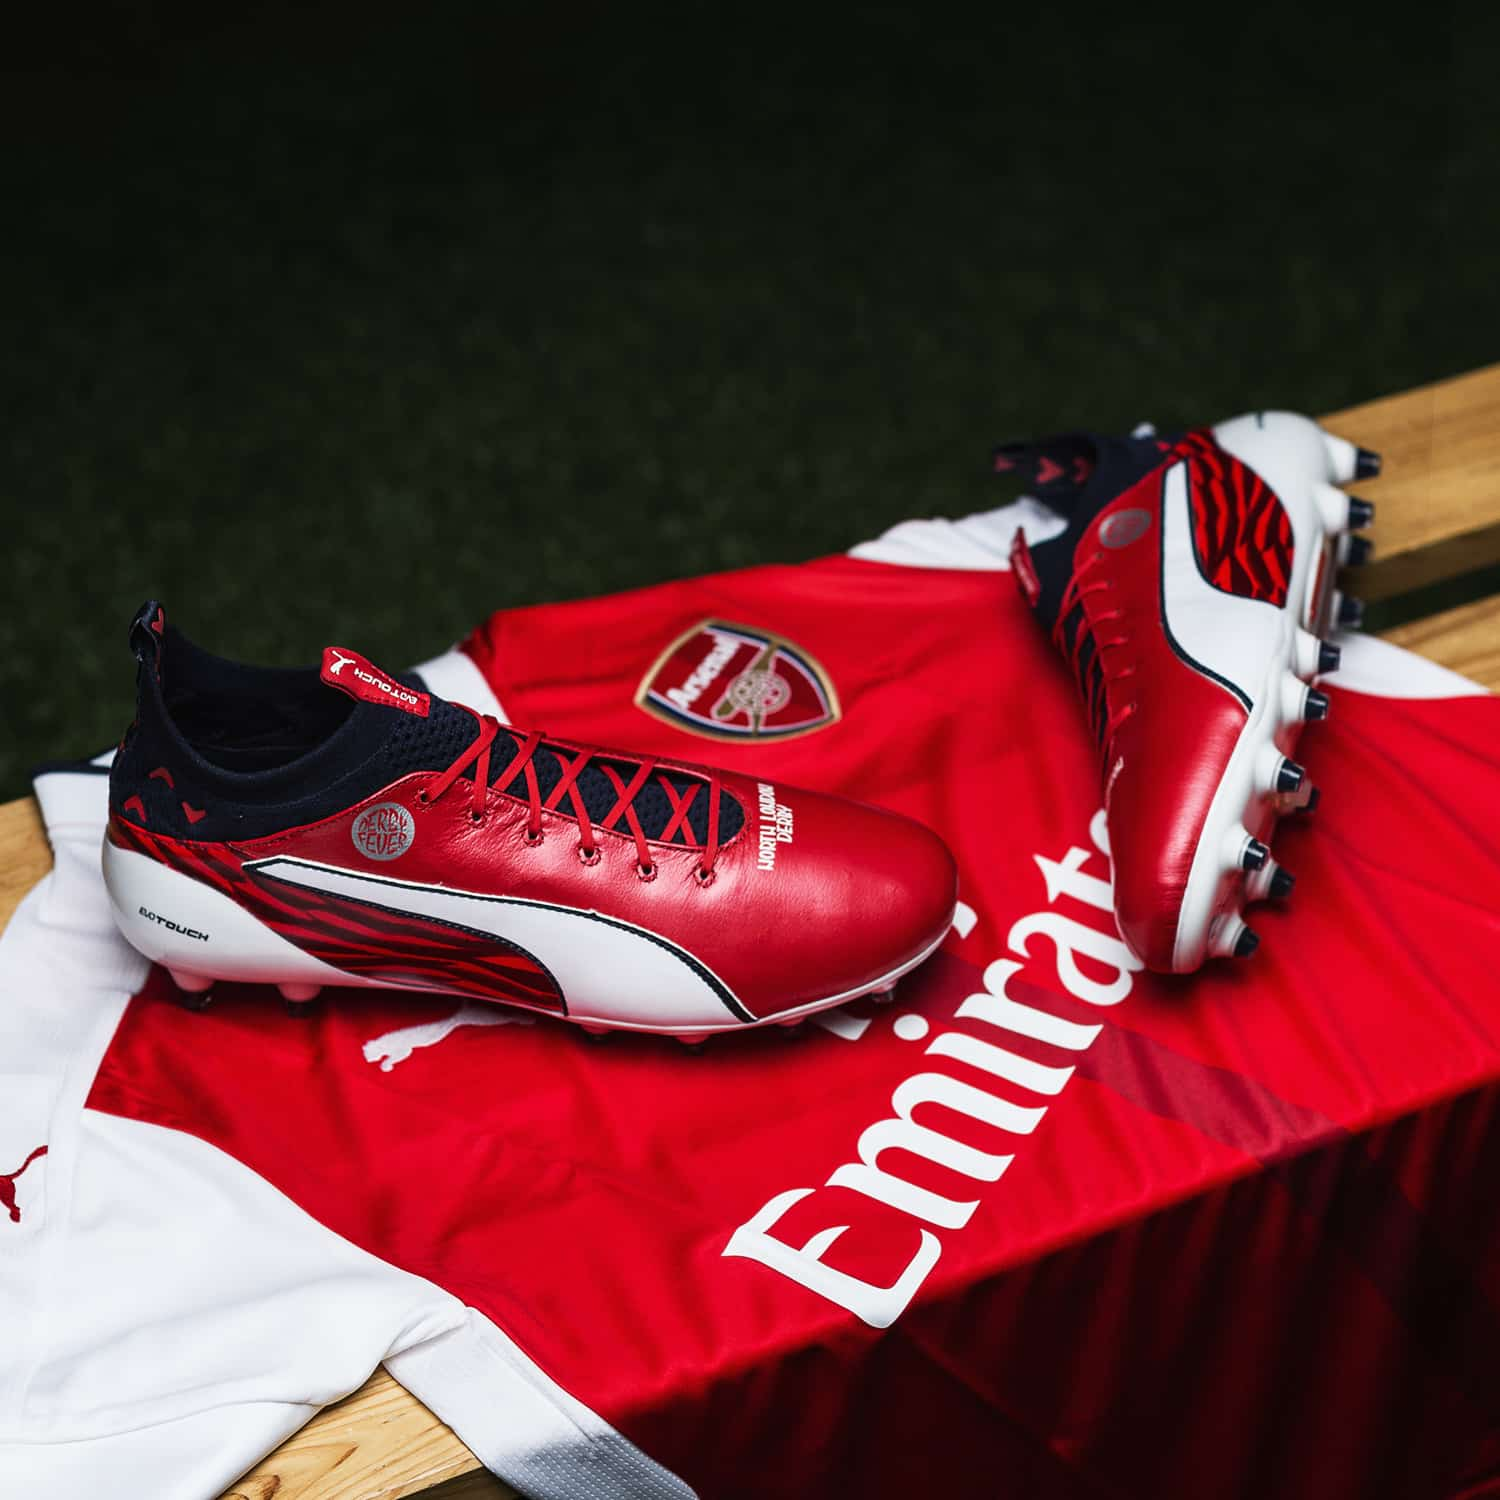 chaussures-football-puma-evotouch-cazorla-london-derby-img4